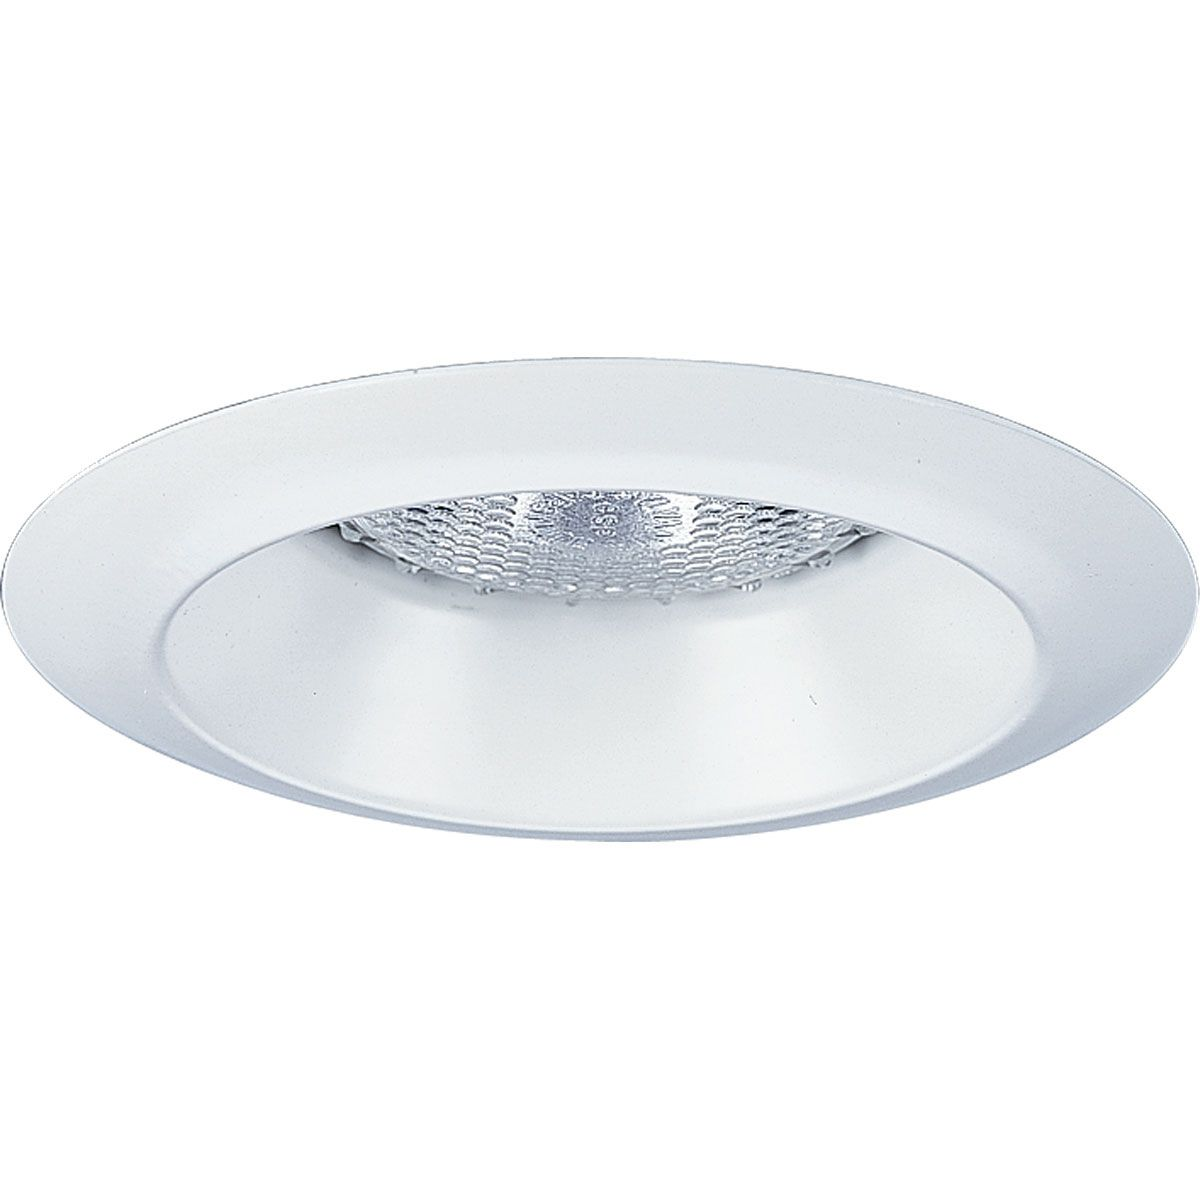 PROP8041-WL28 OPEN SHOWER LIGHT; ALUMINUM; WHITE; 4 INCH NOMINAL APERTURE SIZE; ROUND APERTURE SHAPE; PAR20 75 W INCANDESCENT LAMP; INSULATED/NON INSULATED CEILING; SIZE 5 INCH W; APPLICATION WET LOCATION; APPROVAL UL, CUL; PROGRESS LIGHTING[R] BRAND; P8041WL MODEL, PROGRESS